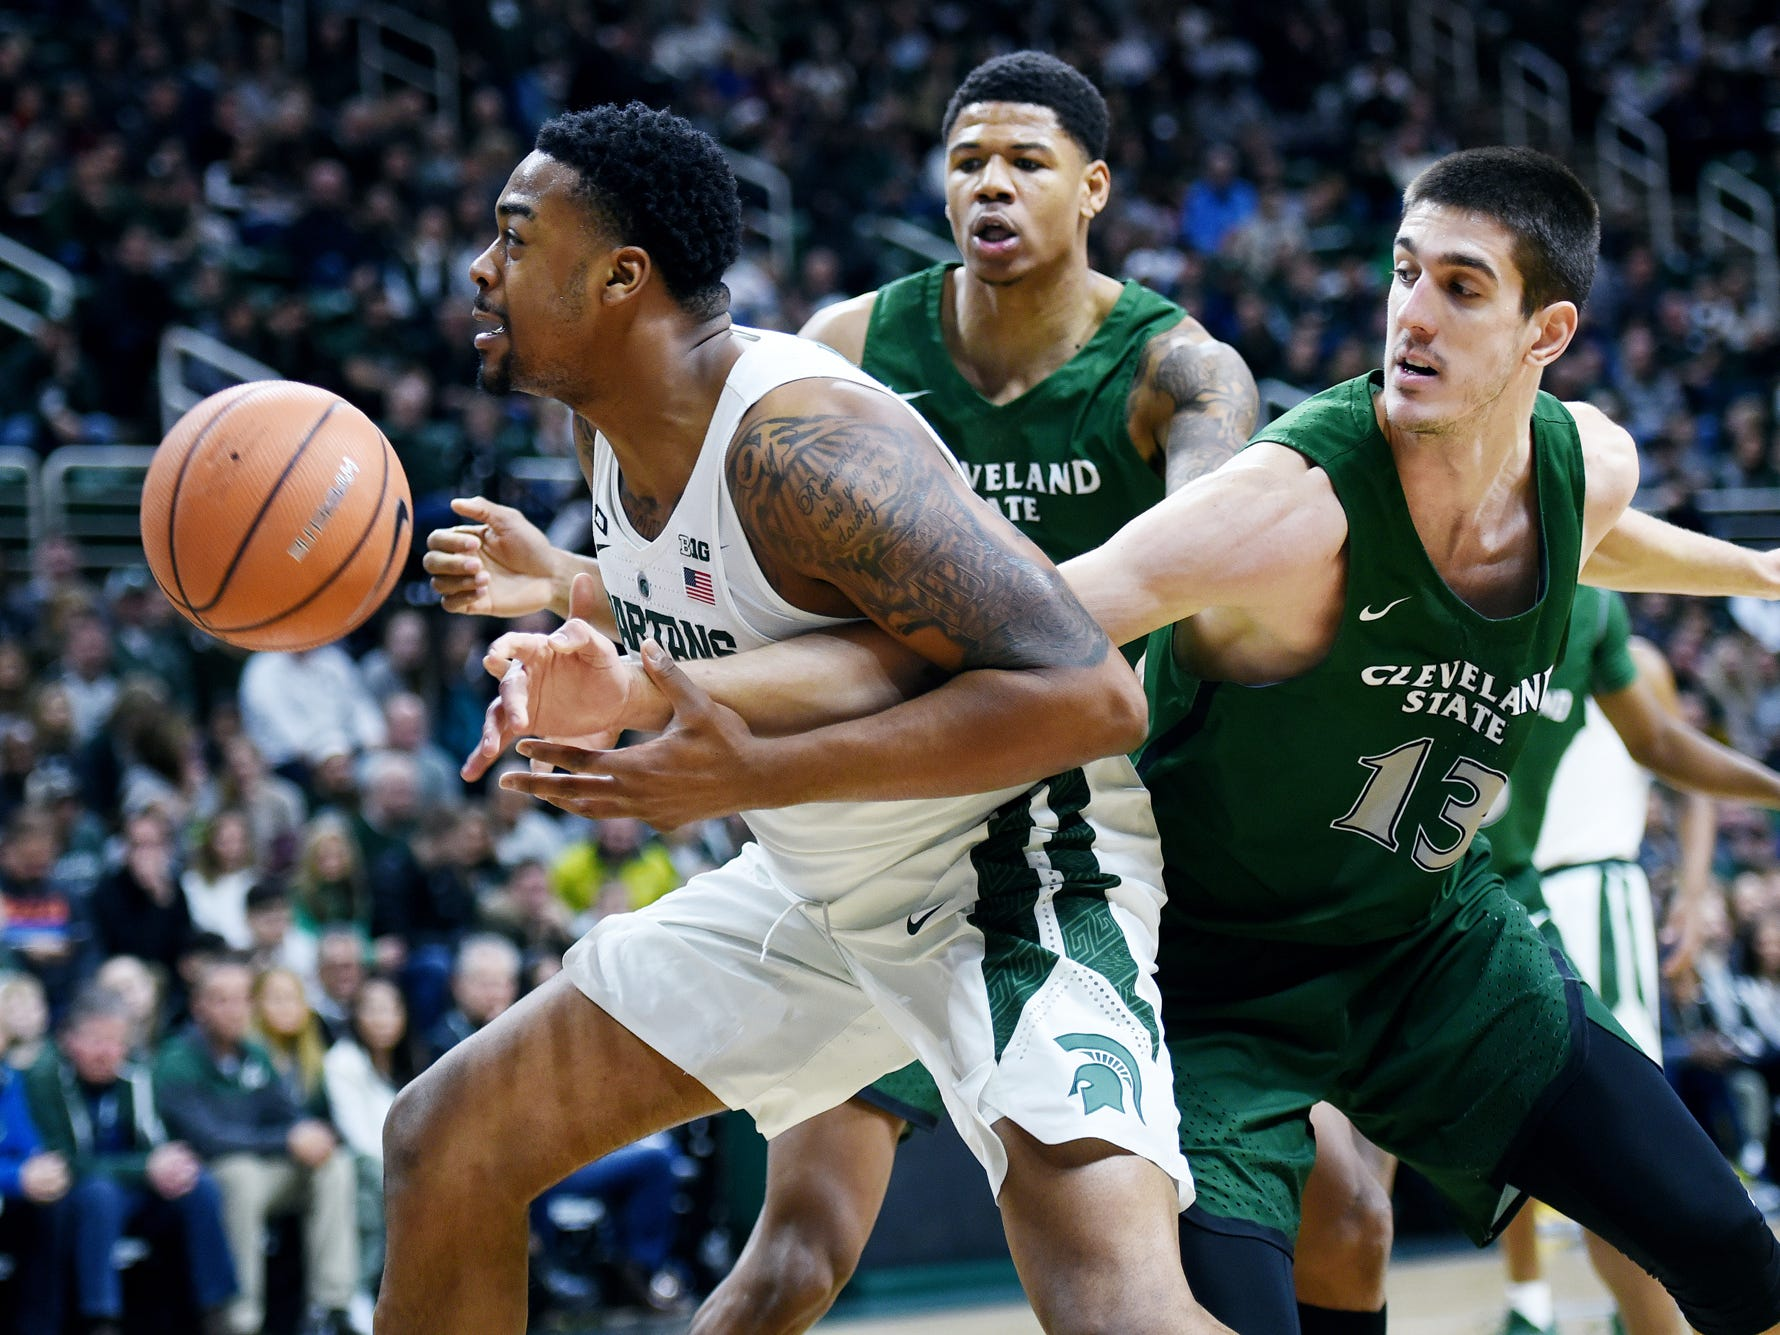 Michigan State's Nick Ward, left, gets tangled up with Cleveland State's Stefan Kenic, right, while going for a rebound during the first half on Friday, Dec. 29, 2017, at the Breslin Center in East Lansing.